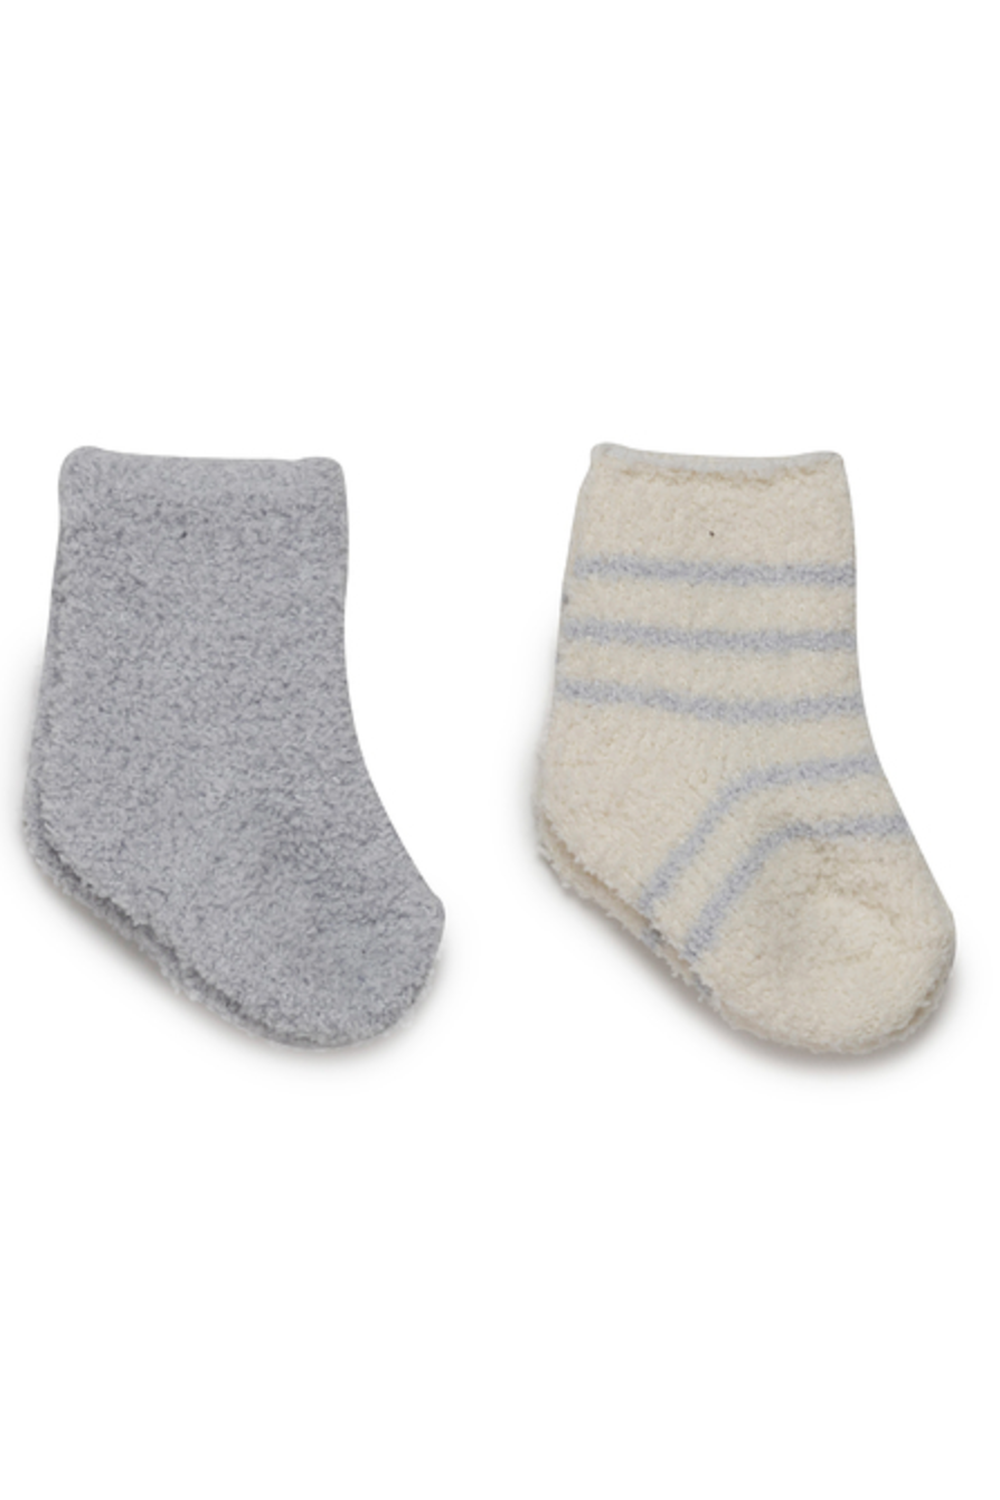 Cozy Chic Infant Sock Set of 2 - Blue